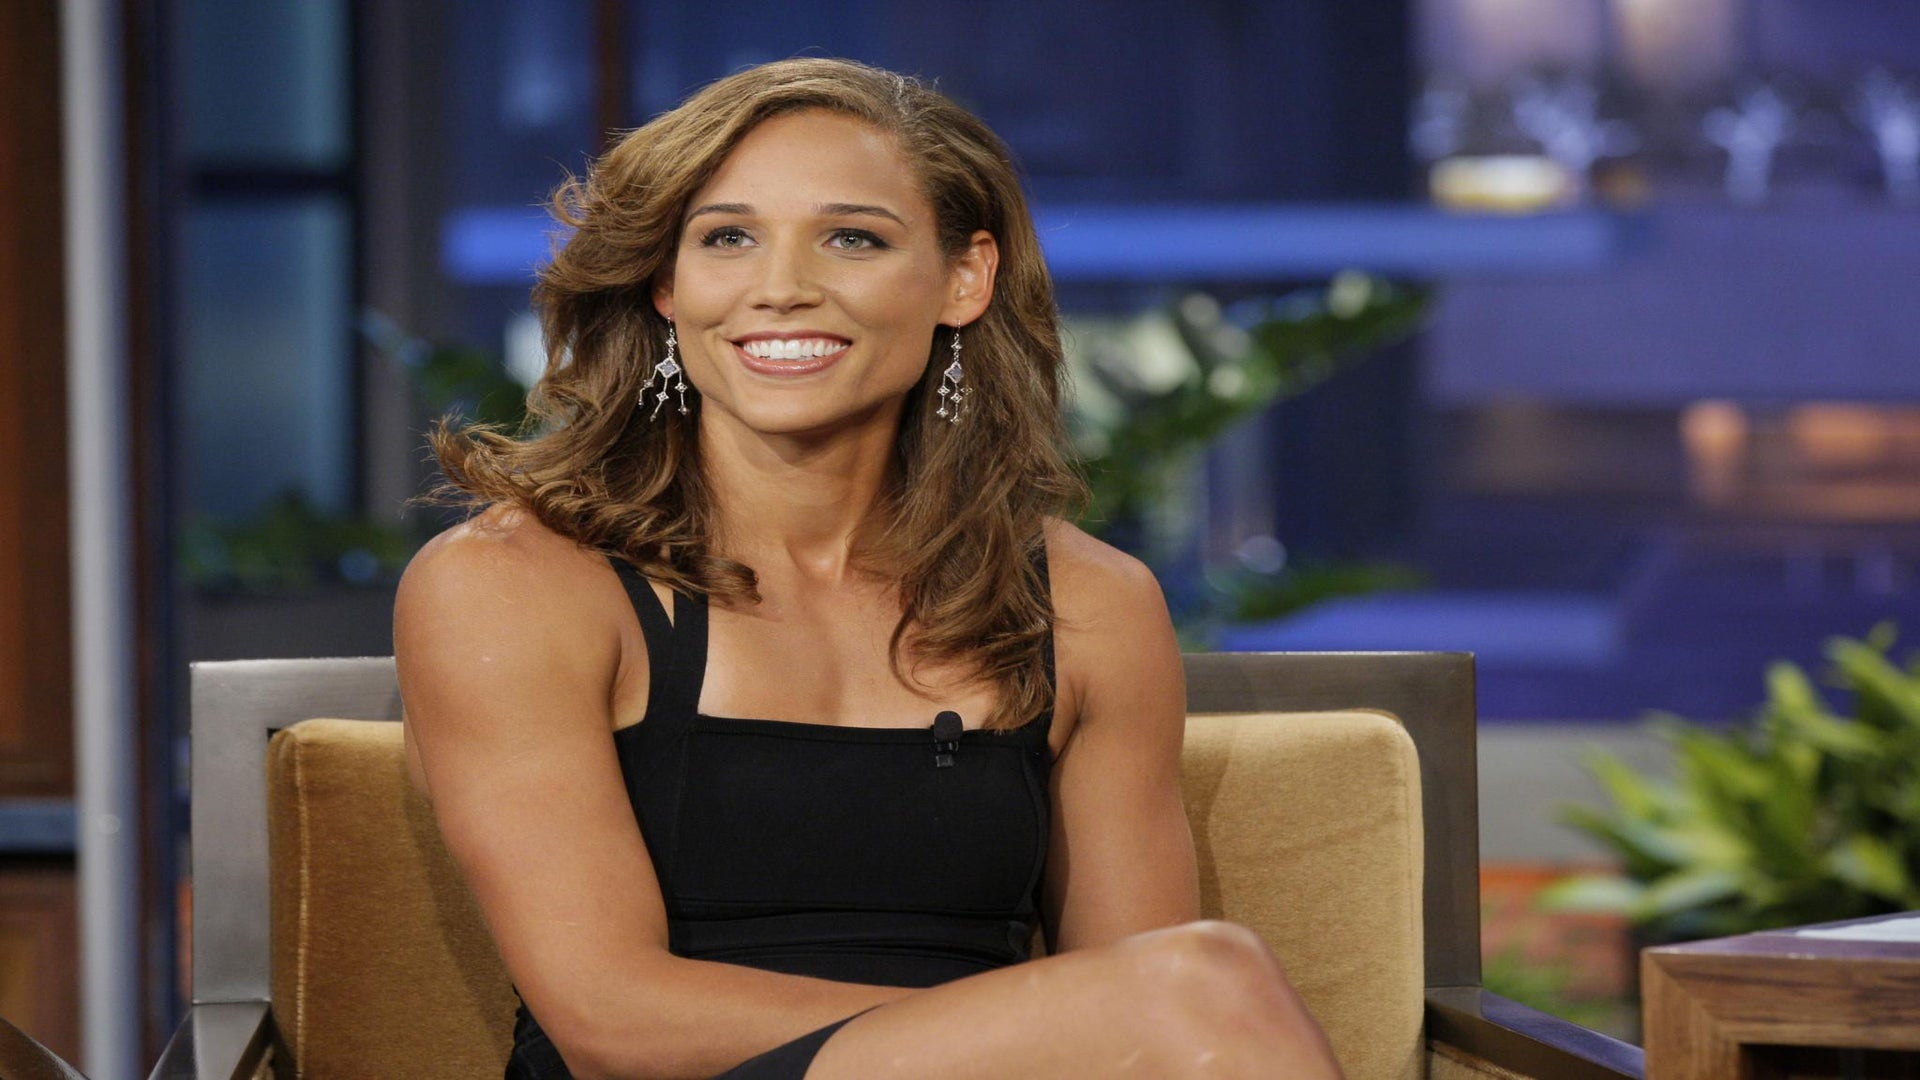 Lolo Jones on Bouncing Back From the Olympics and Creating a Fresh Start